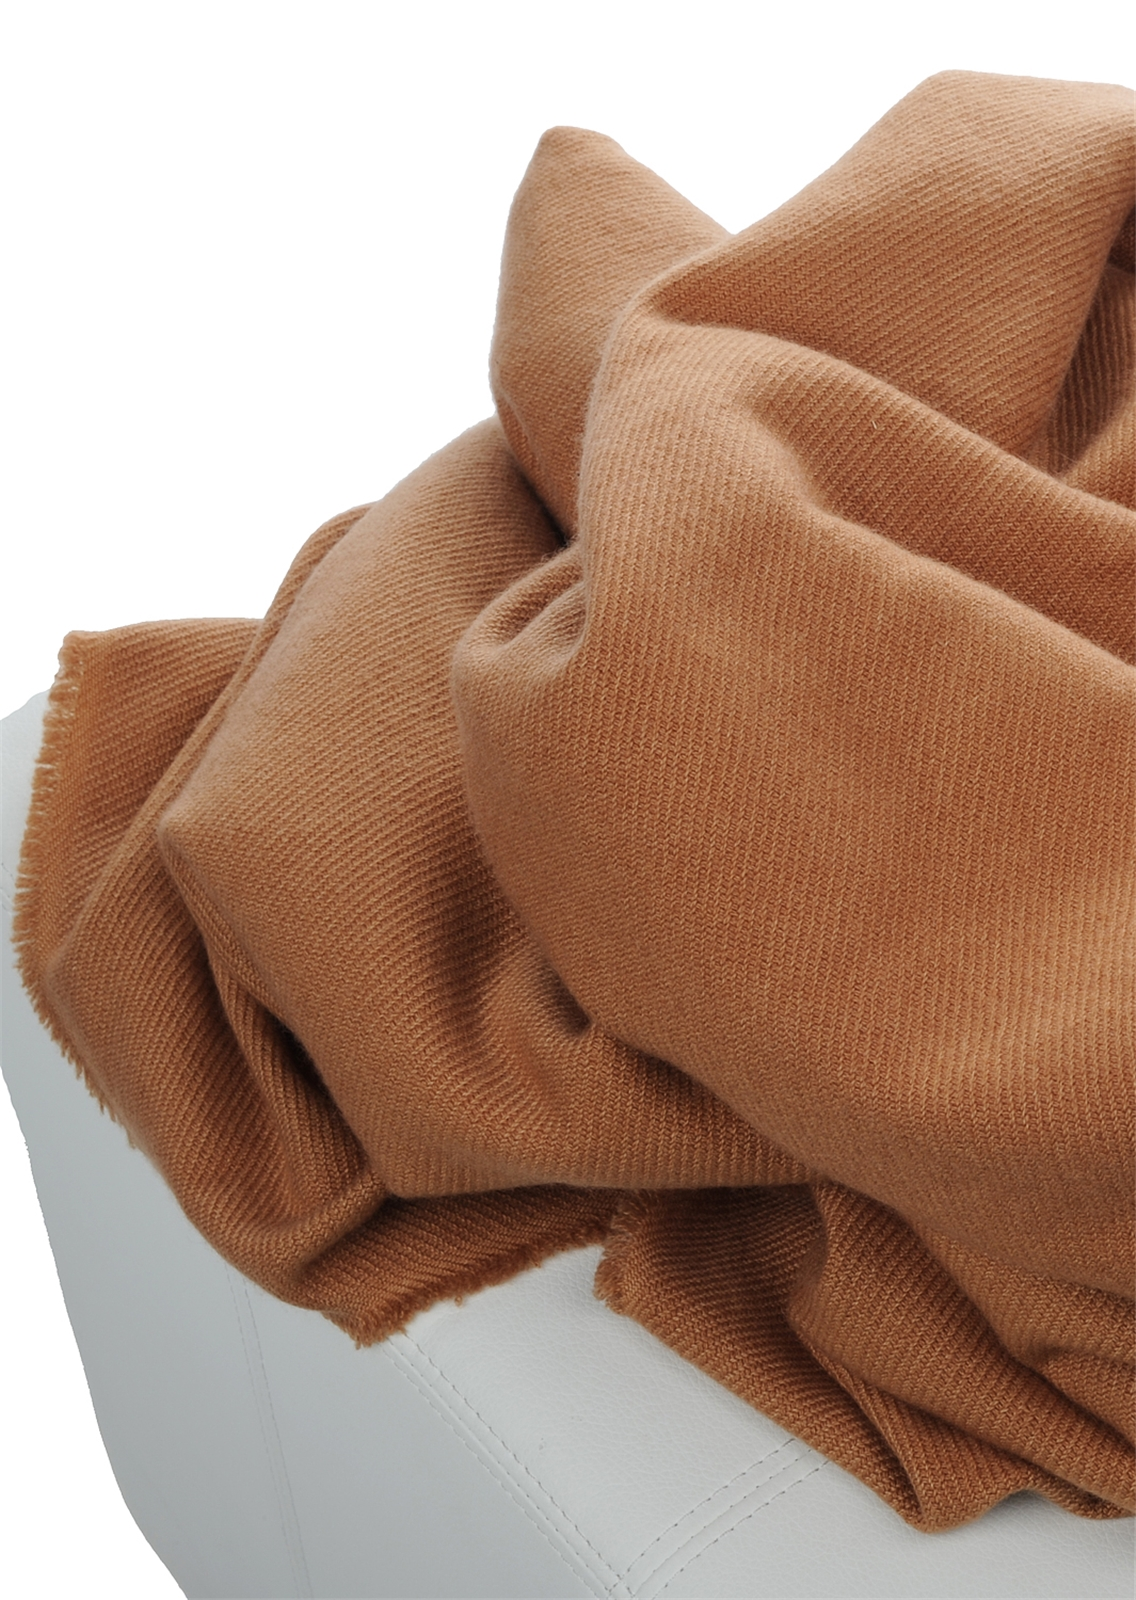 Cashmere accessories blanket toodoo camel 220x220cm